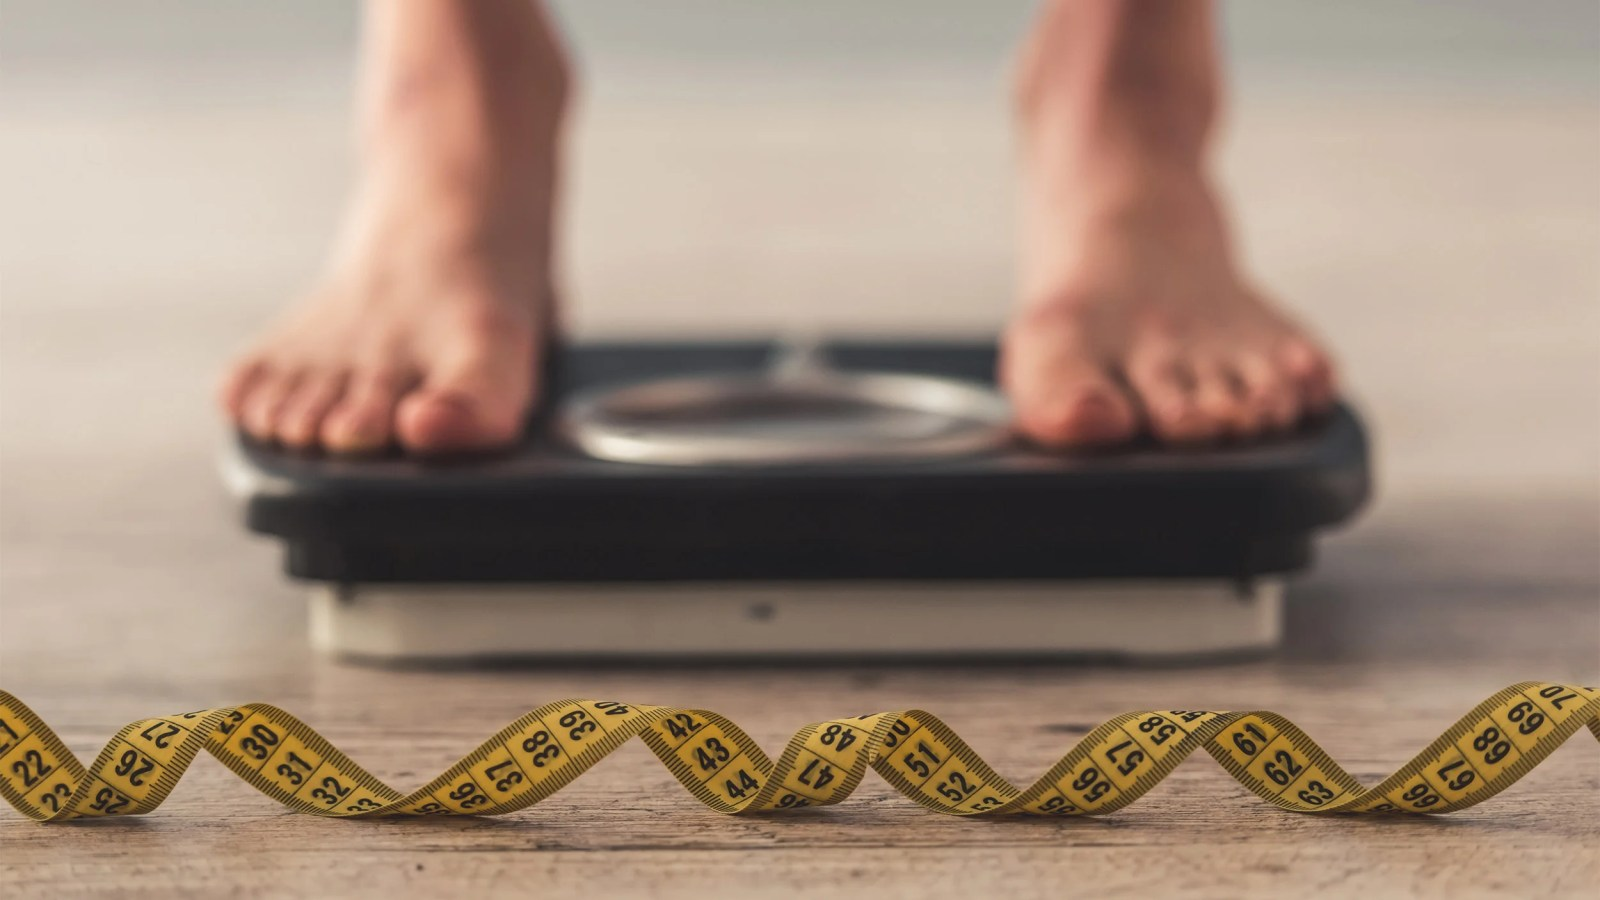 woman feet standing on weigh scales,